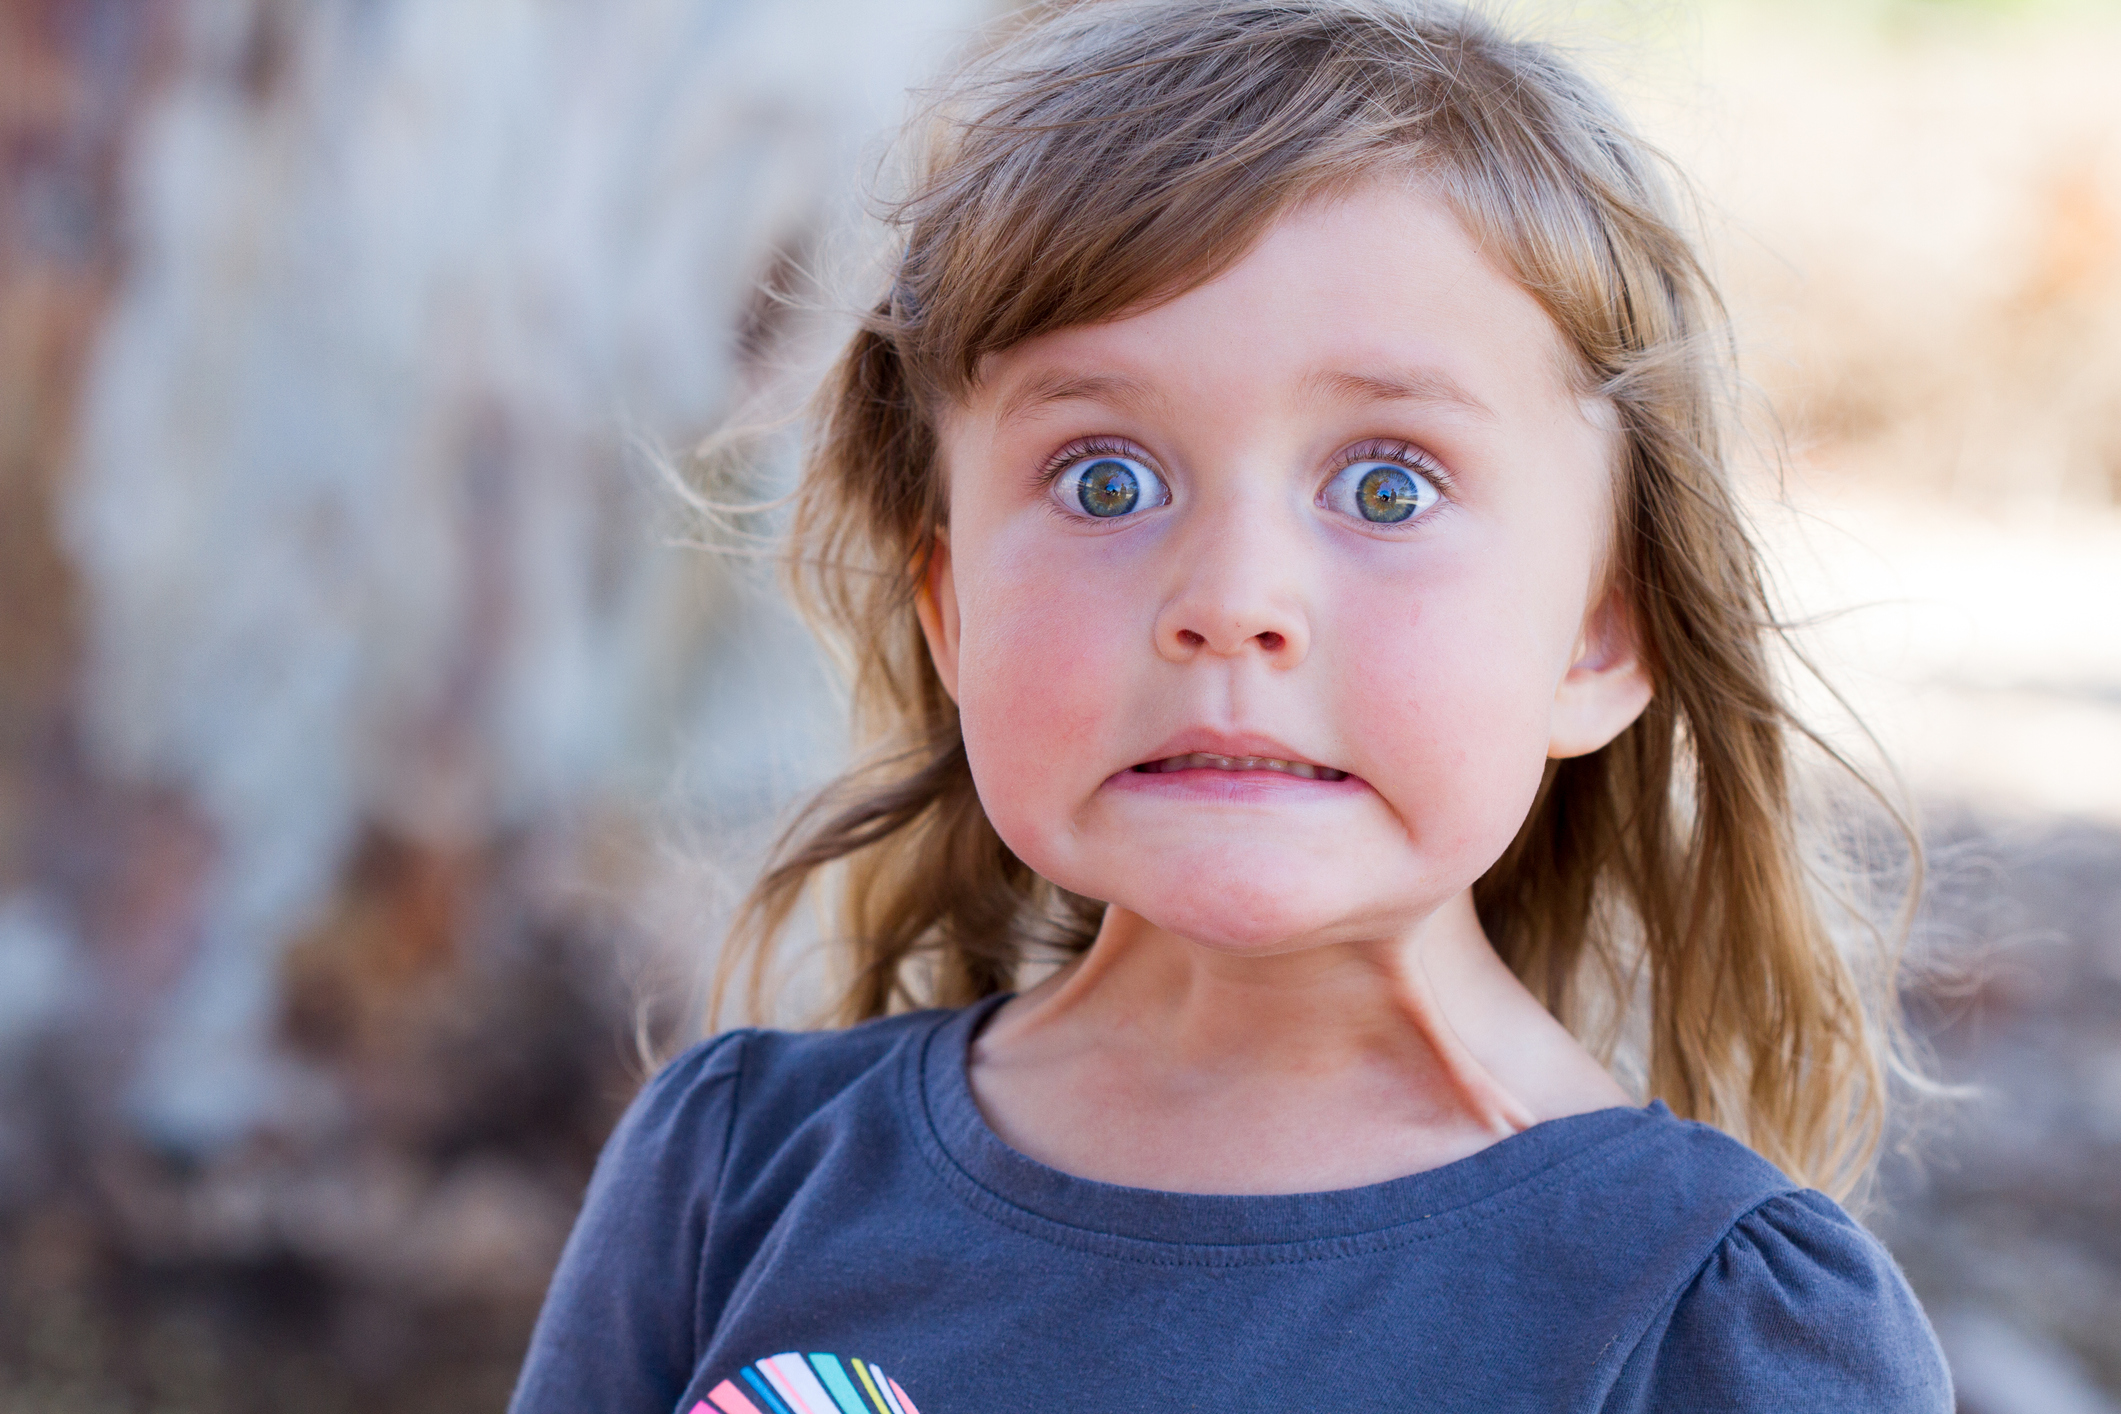 Creepiest Things Kids Have Ever Said or Done Facts